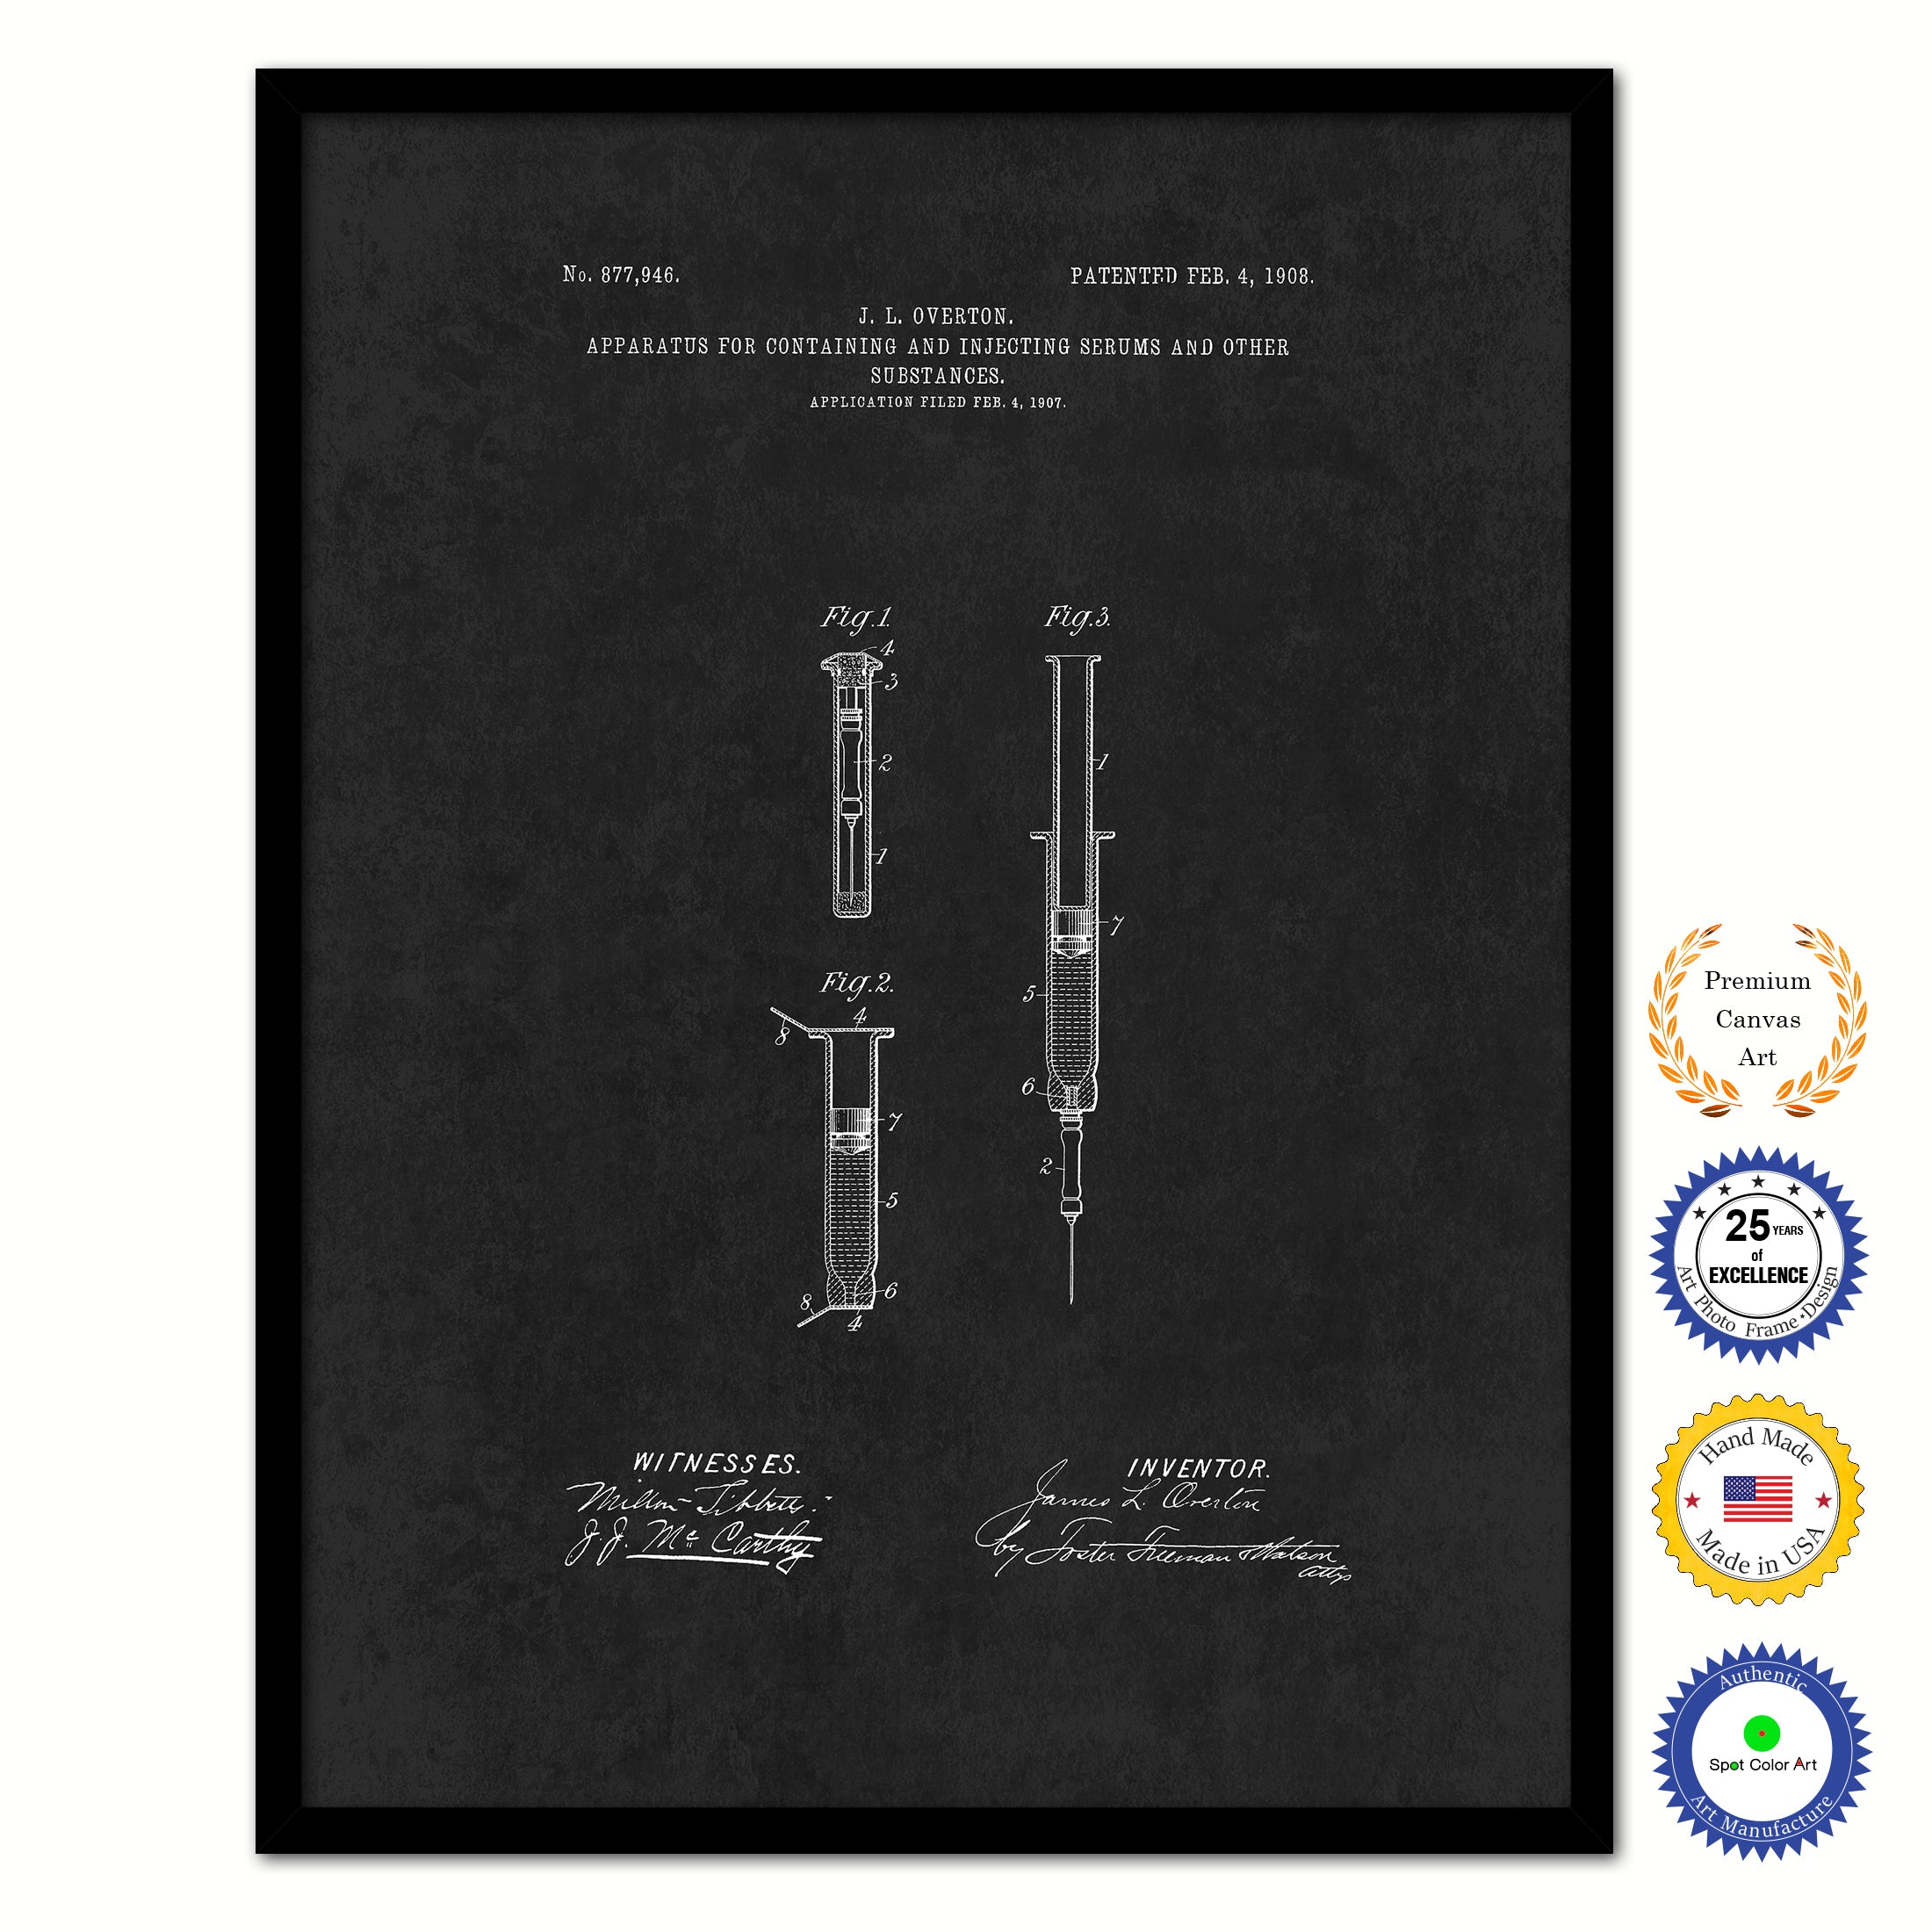 1908 Doctor Syringe Vintage Patent Artwork Black Framed Canvas Home Office Decor Great for Doctor Paramedic Surgeon Hospital Medical Student